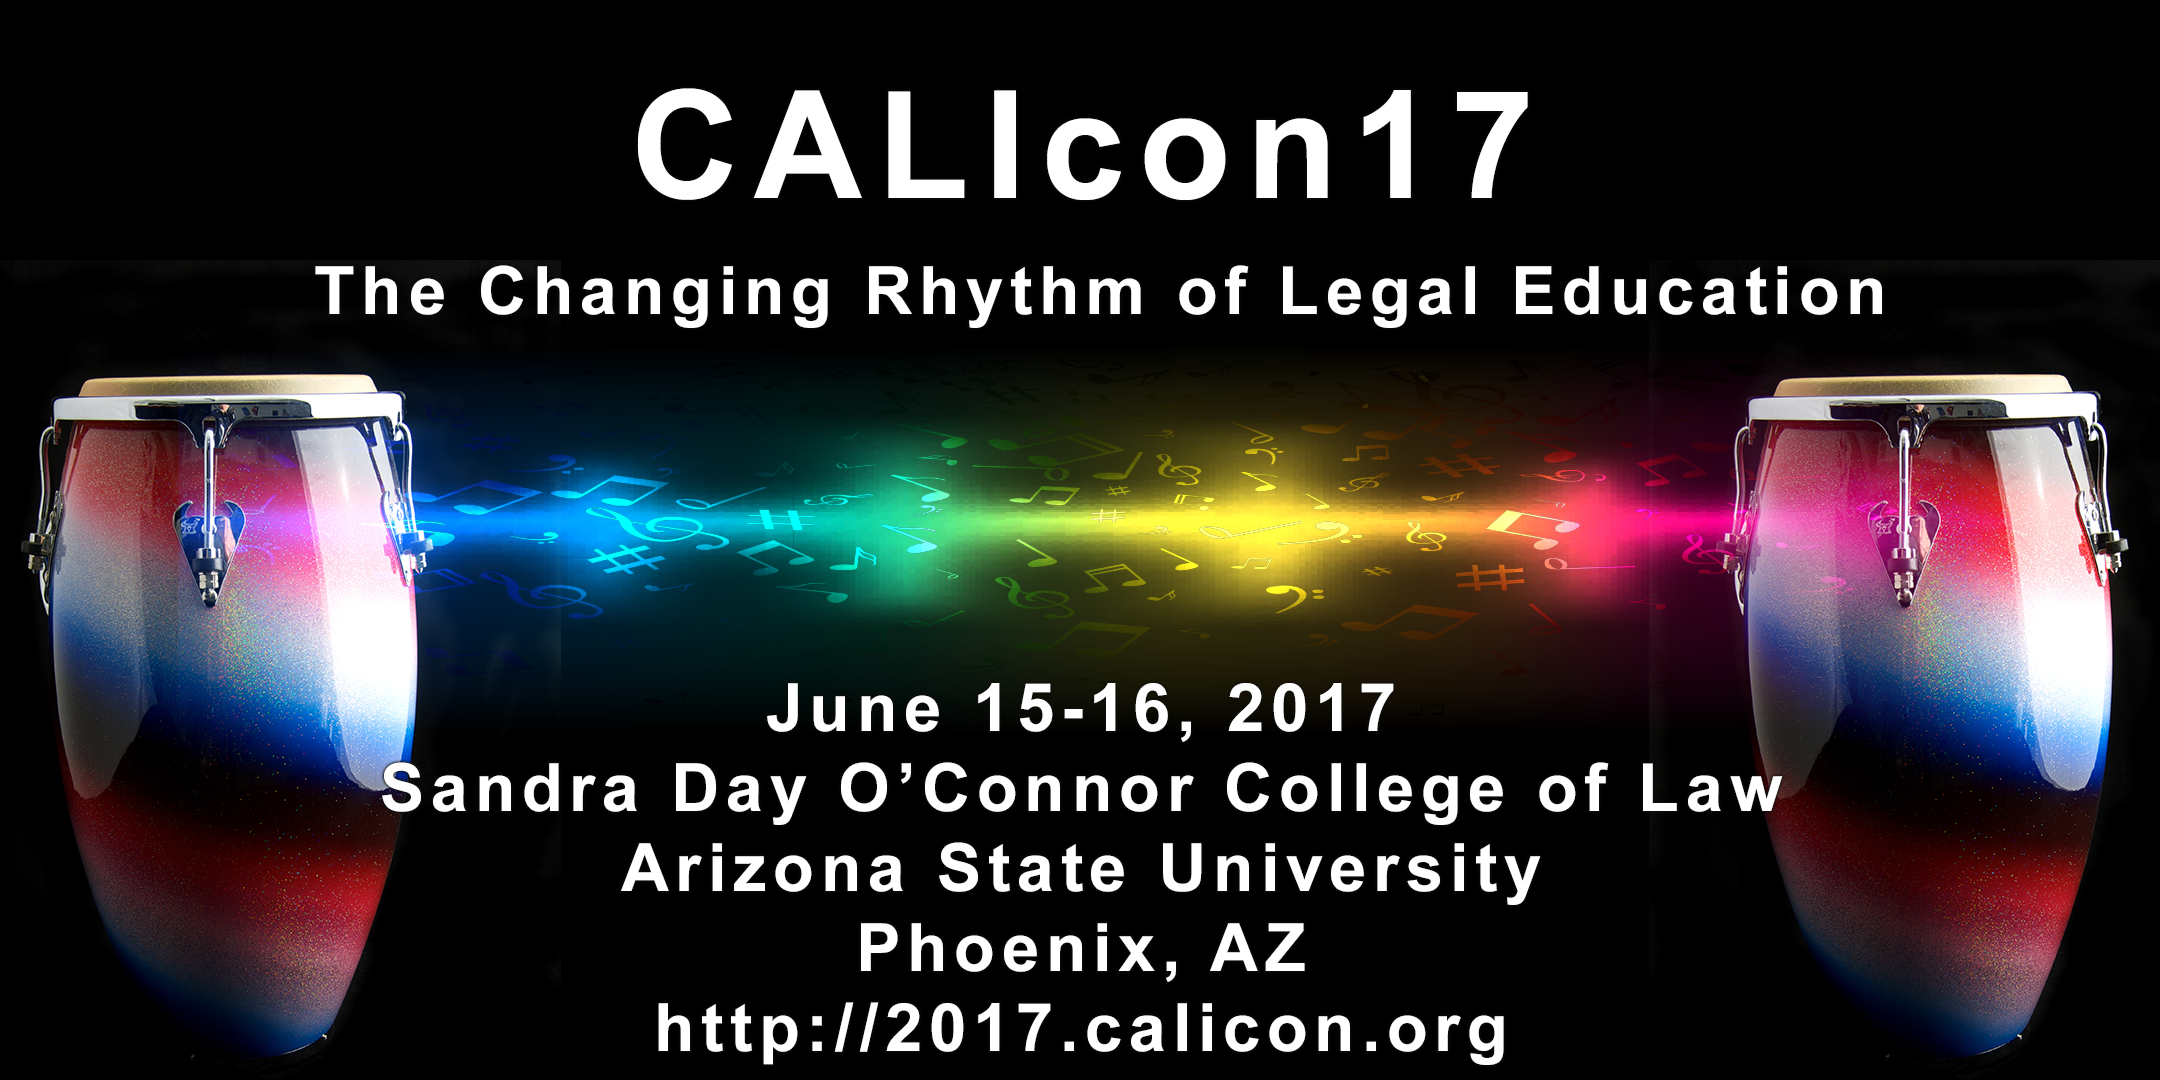 CALIcon17 June 15-16 Phoenix AZ